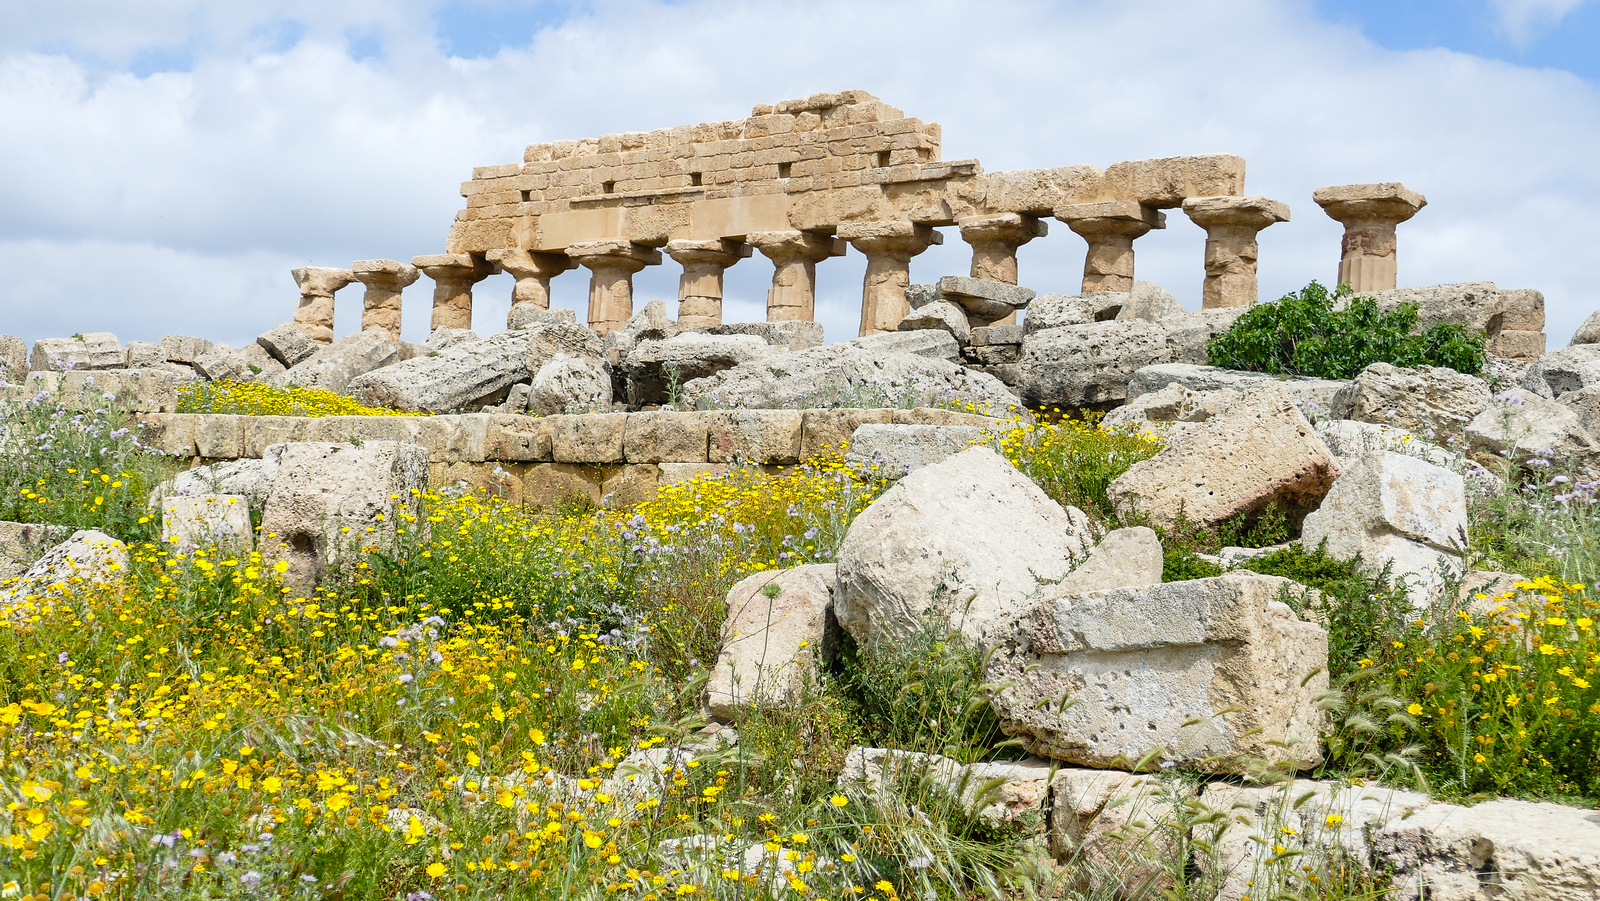 Only a small portion of the Temple of Apollo remains standing in Selinunte, Sicily. it's a site worth seeing on a cruise excursion from Trapani.